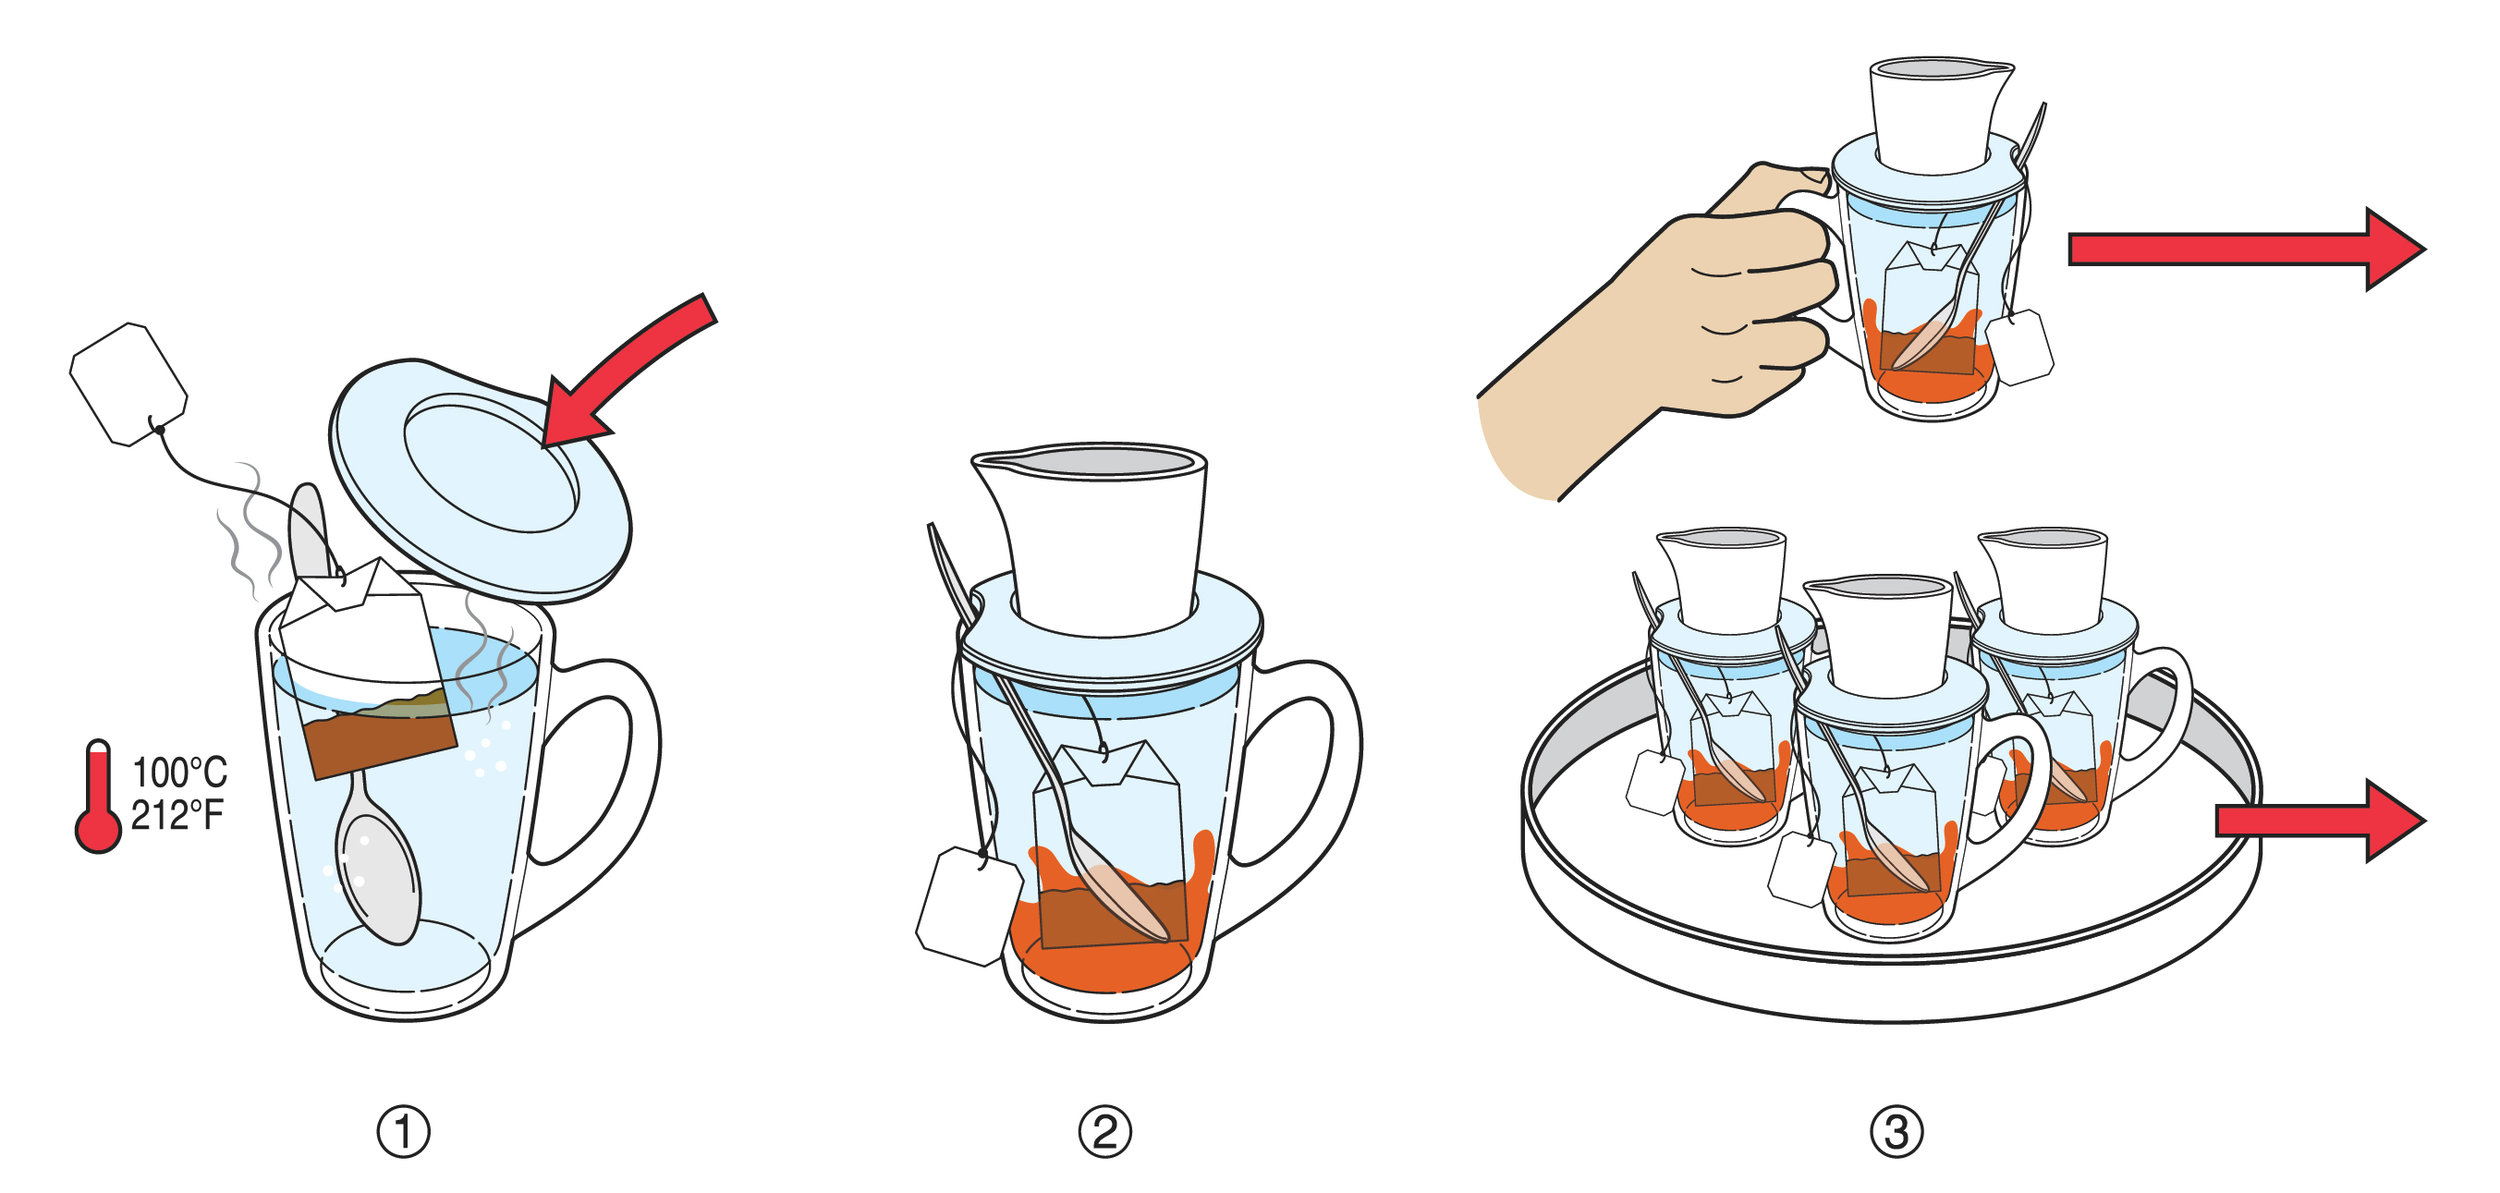 Teapy Diagram with Ceramic Jug-03.jpg